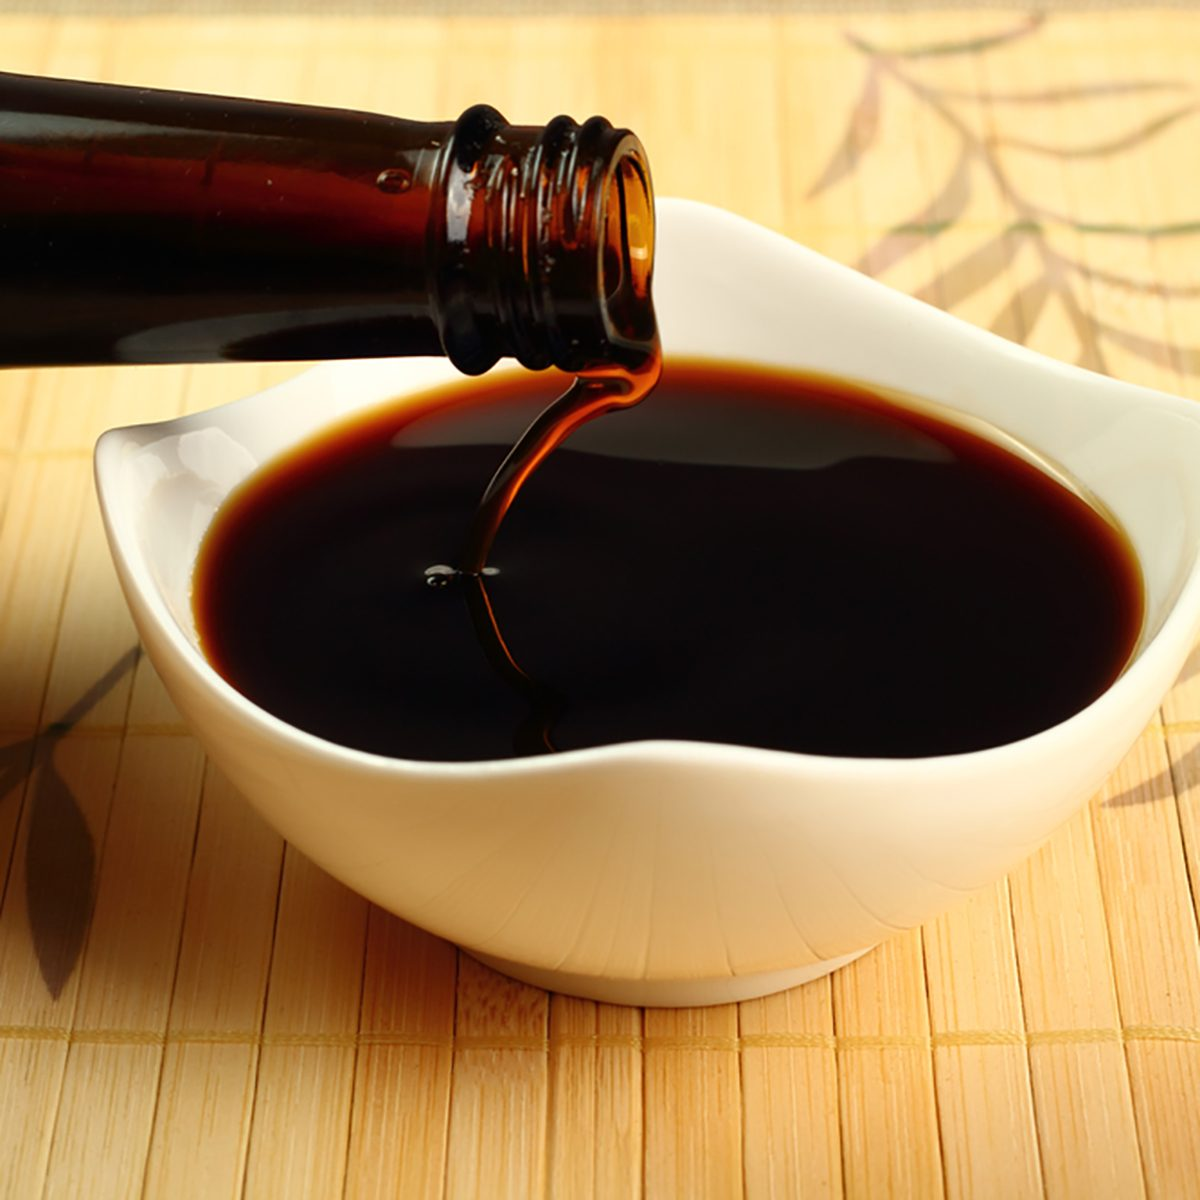 Pouring Soy Sauce into bowl; Shutterstock ID 161366414; Job (TFH, TOH, RD, BNB, CWM, CM): Taste of Home